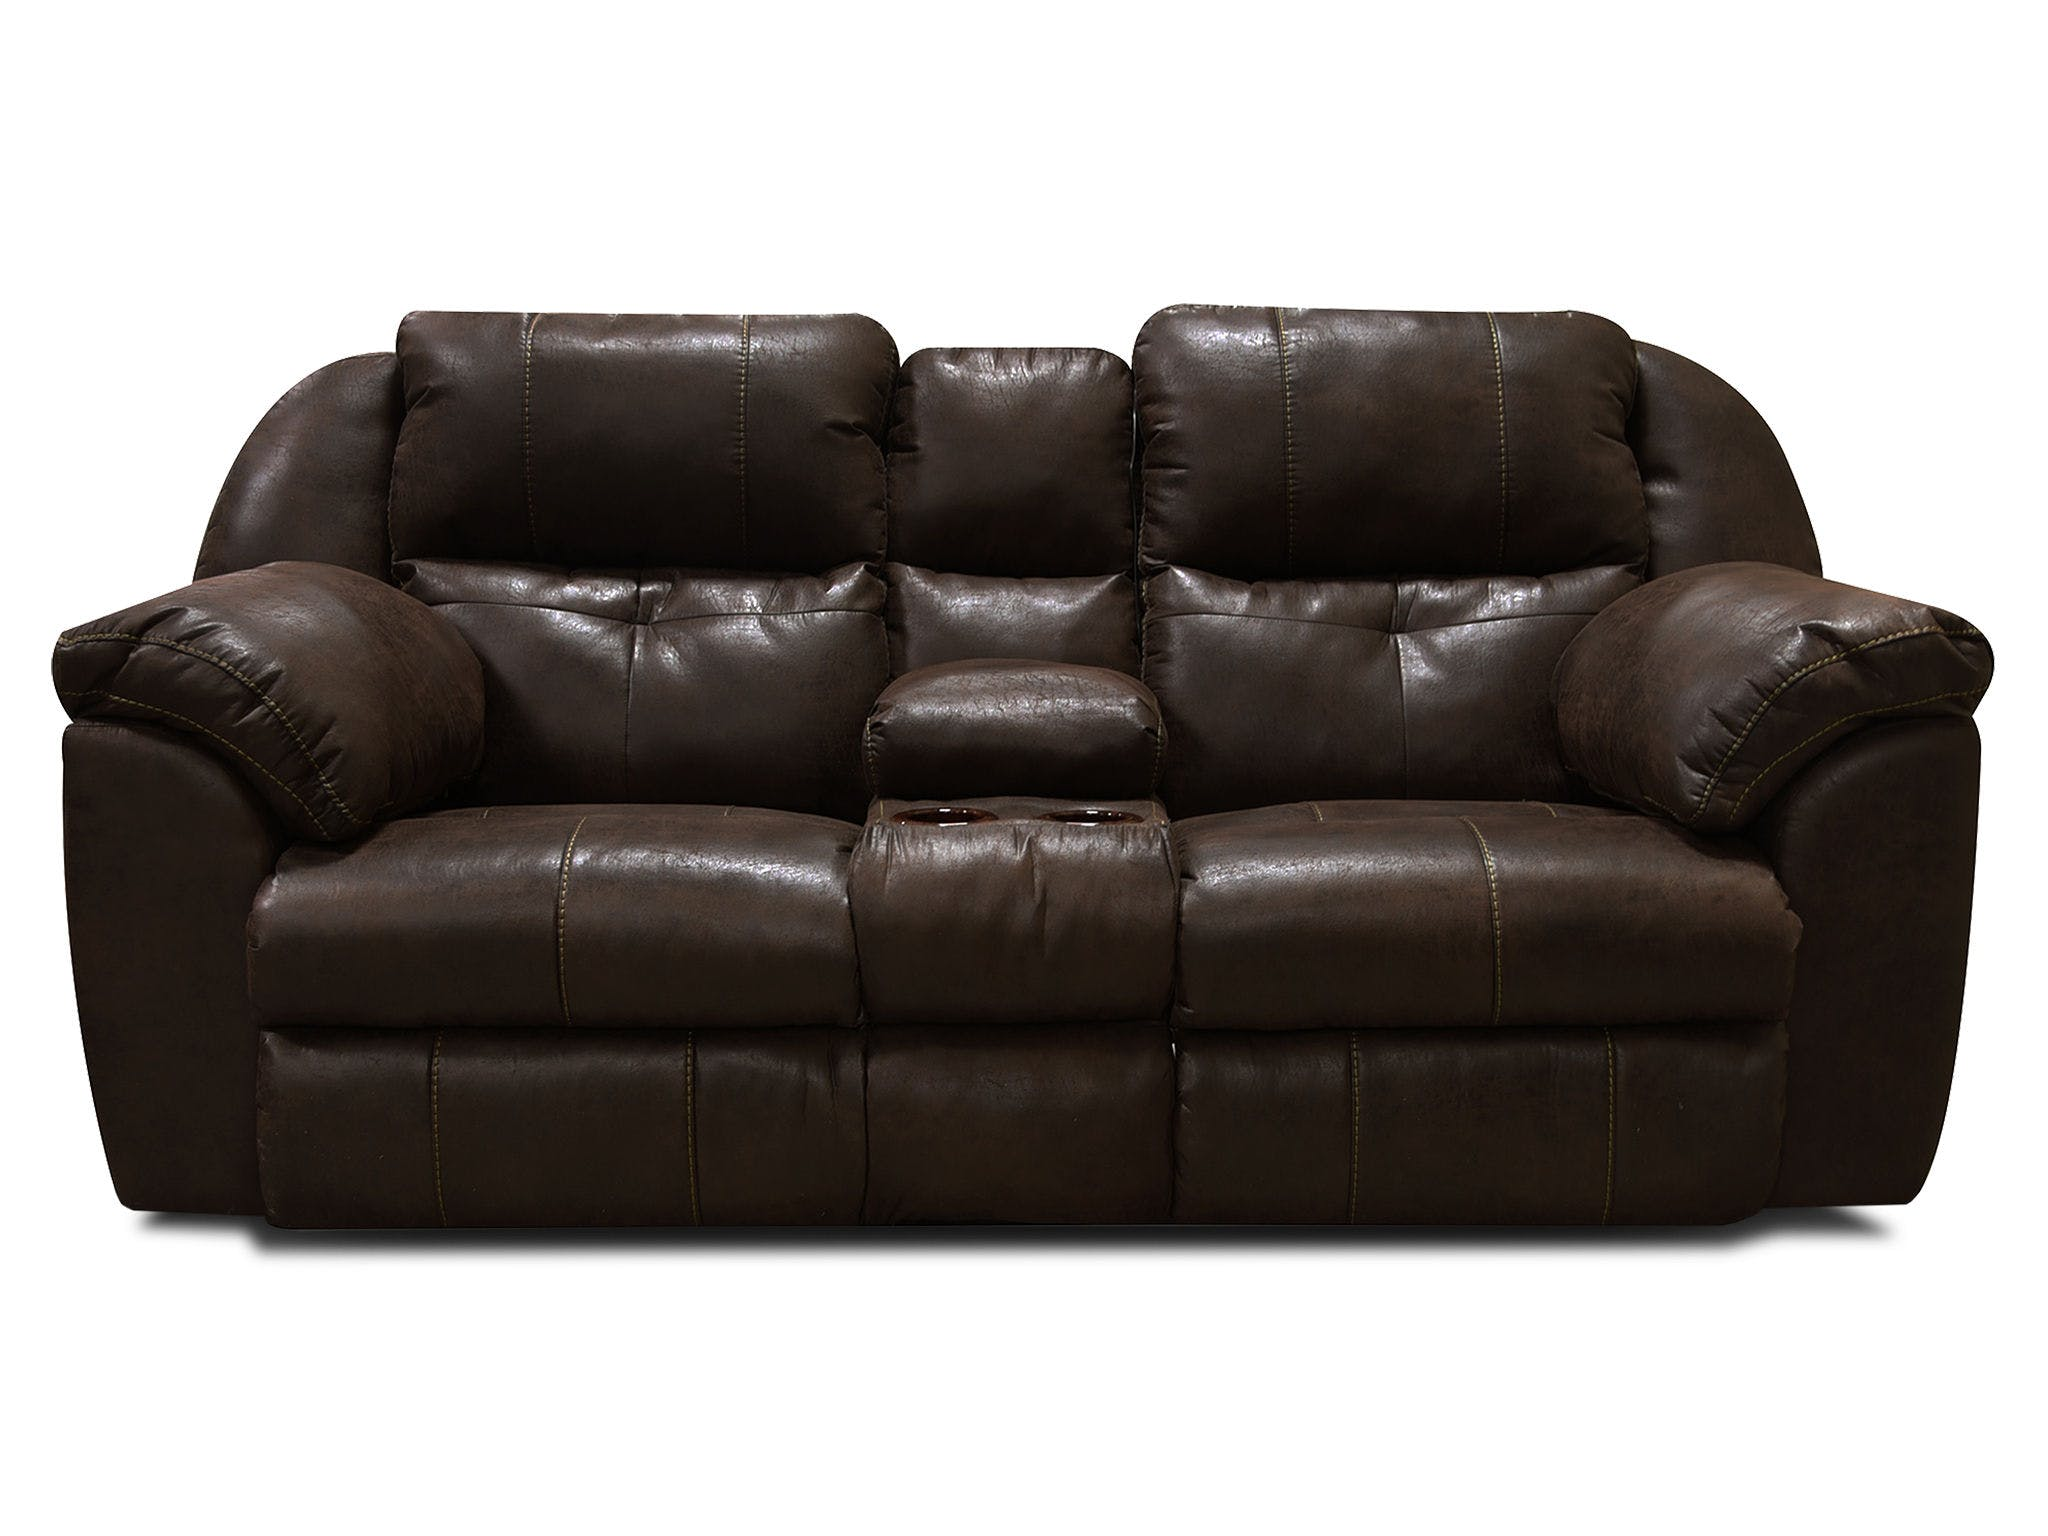 England Living Room Double Reclining Loveseat Console EZ6D85H